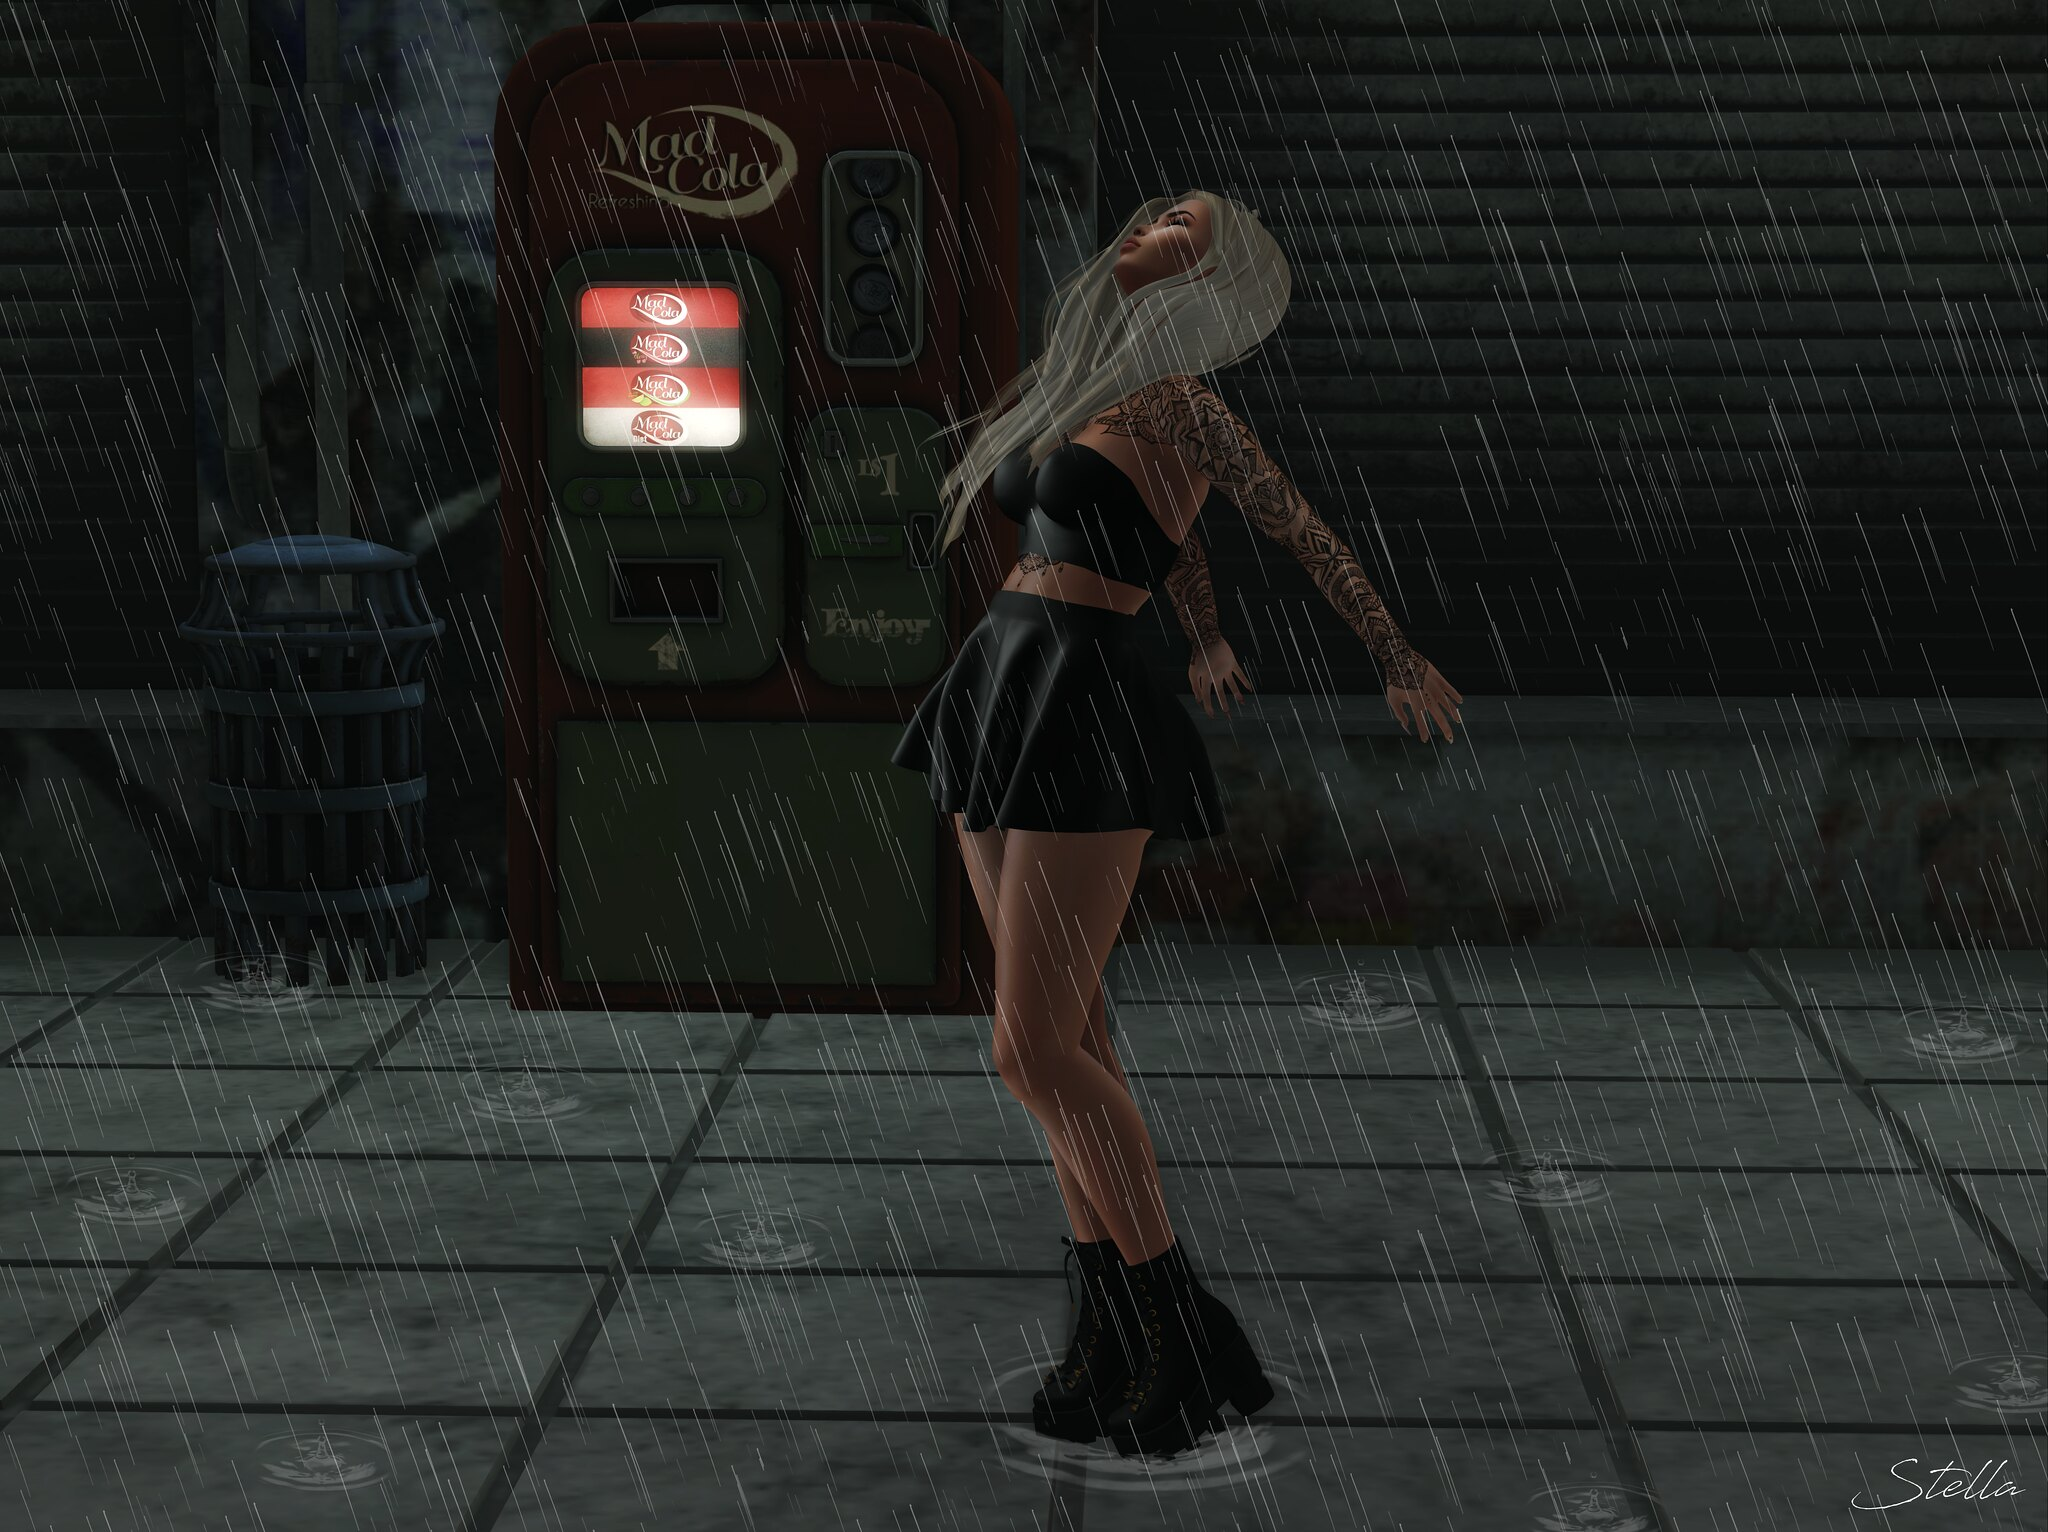 Feel the rain on my skin